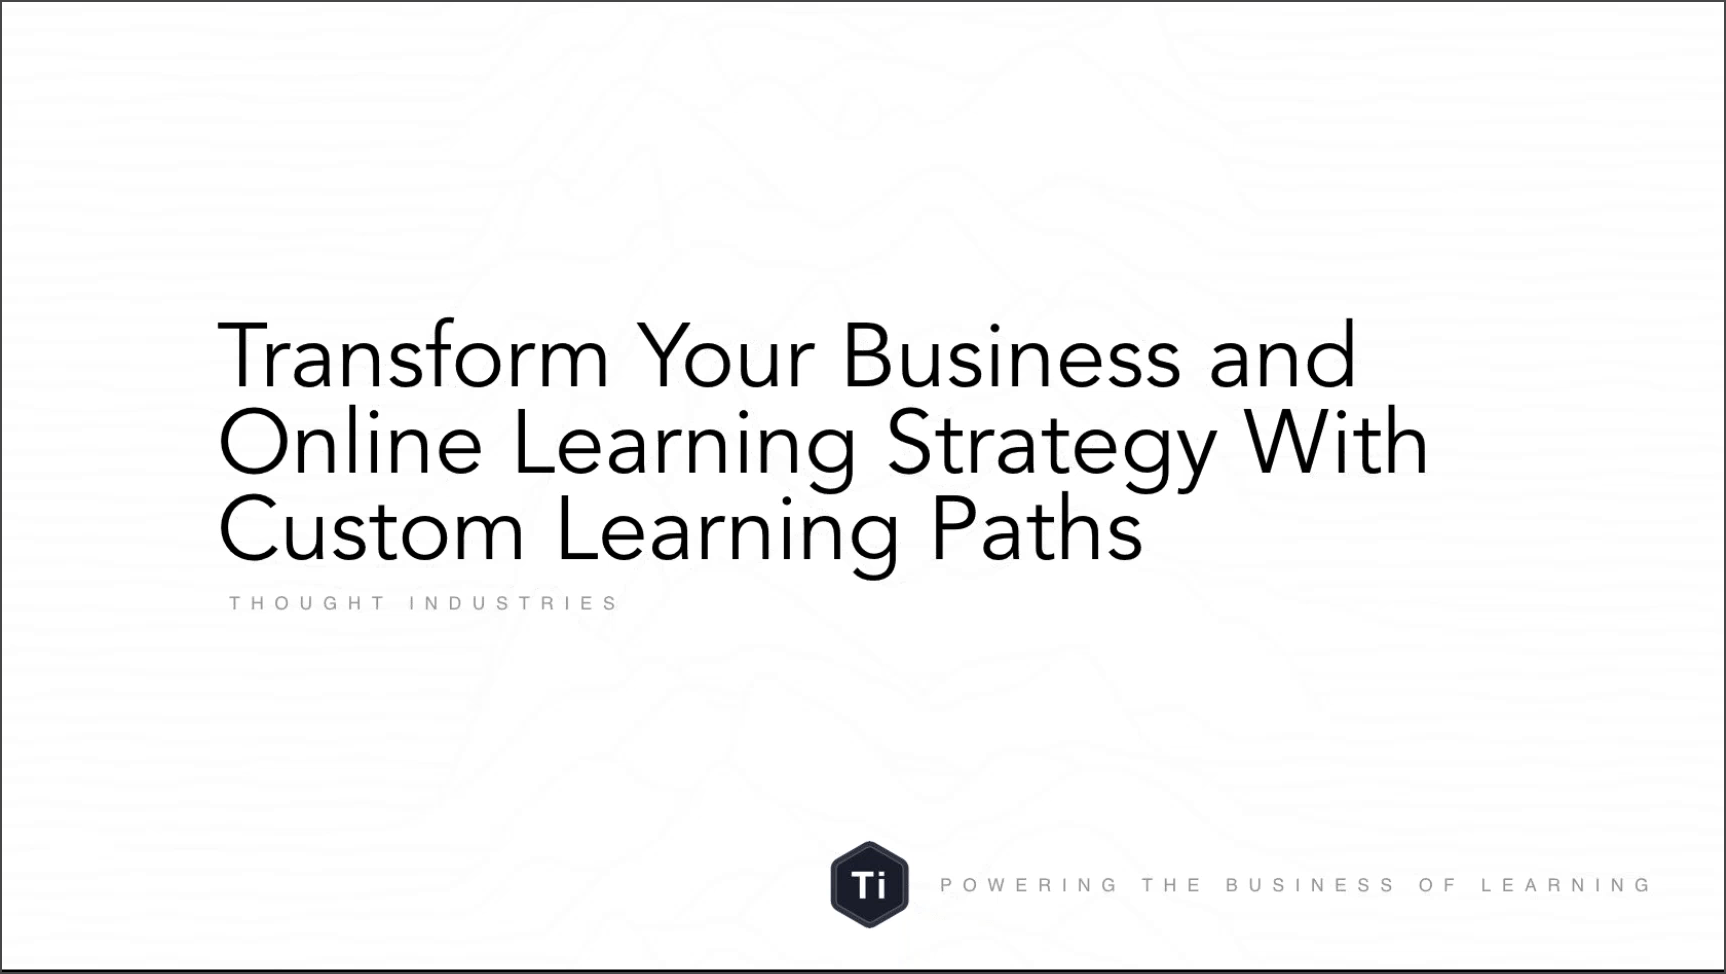 Transform Your Business and Online Learning Strategy With Custom Learning Paths